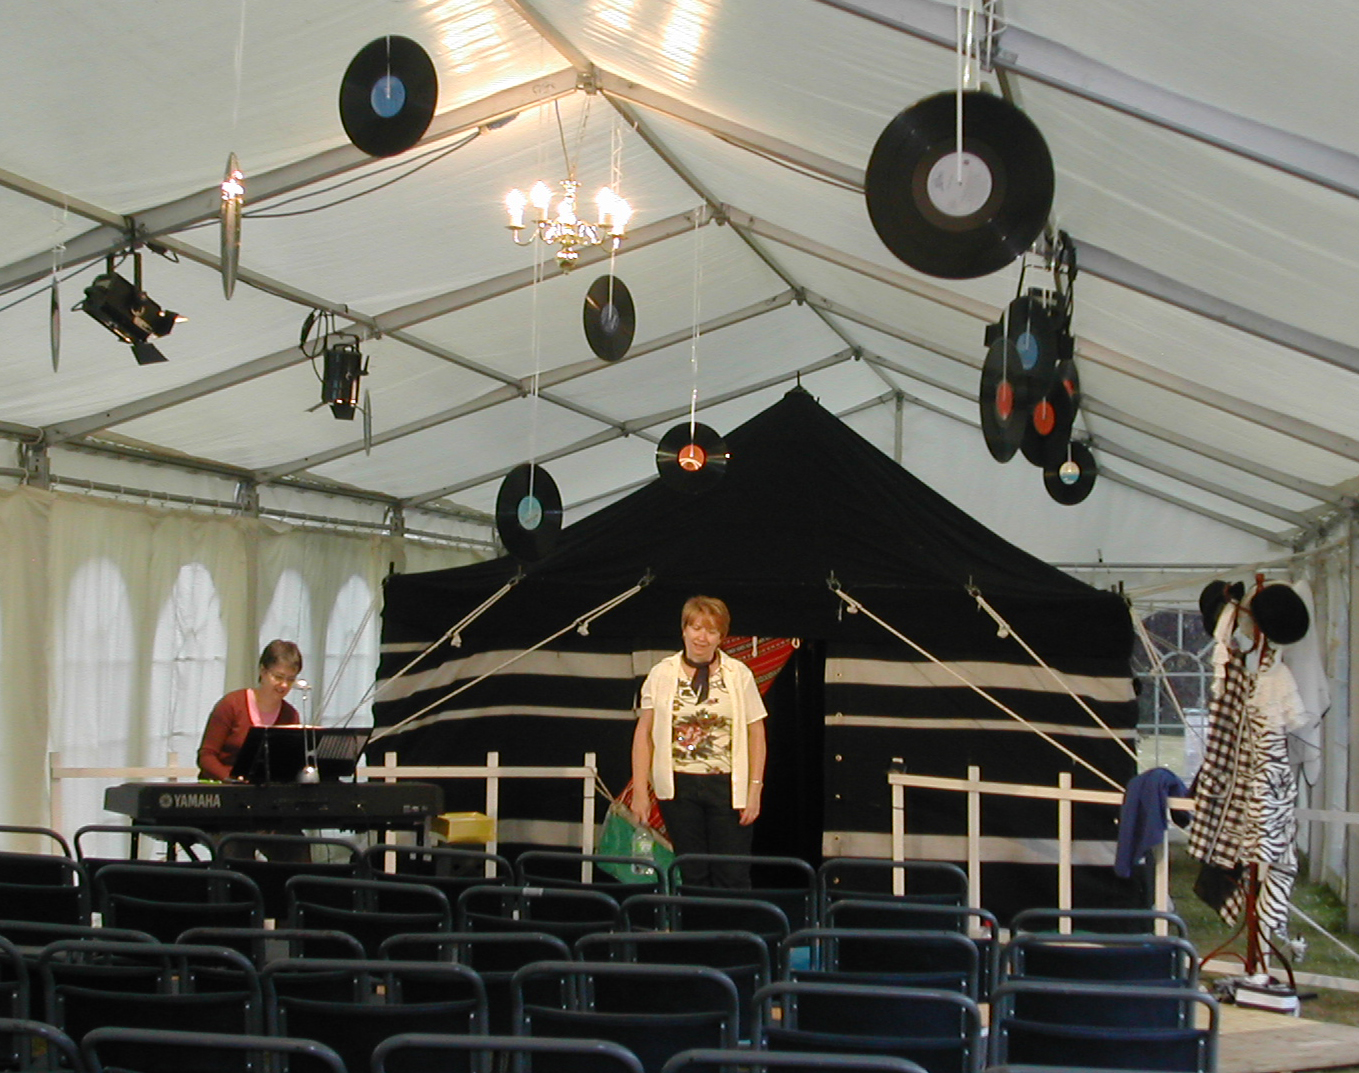 Rehearsing in a 'disco' marquee, with a 'chill-out' tent behind!